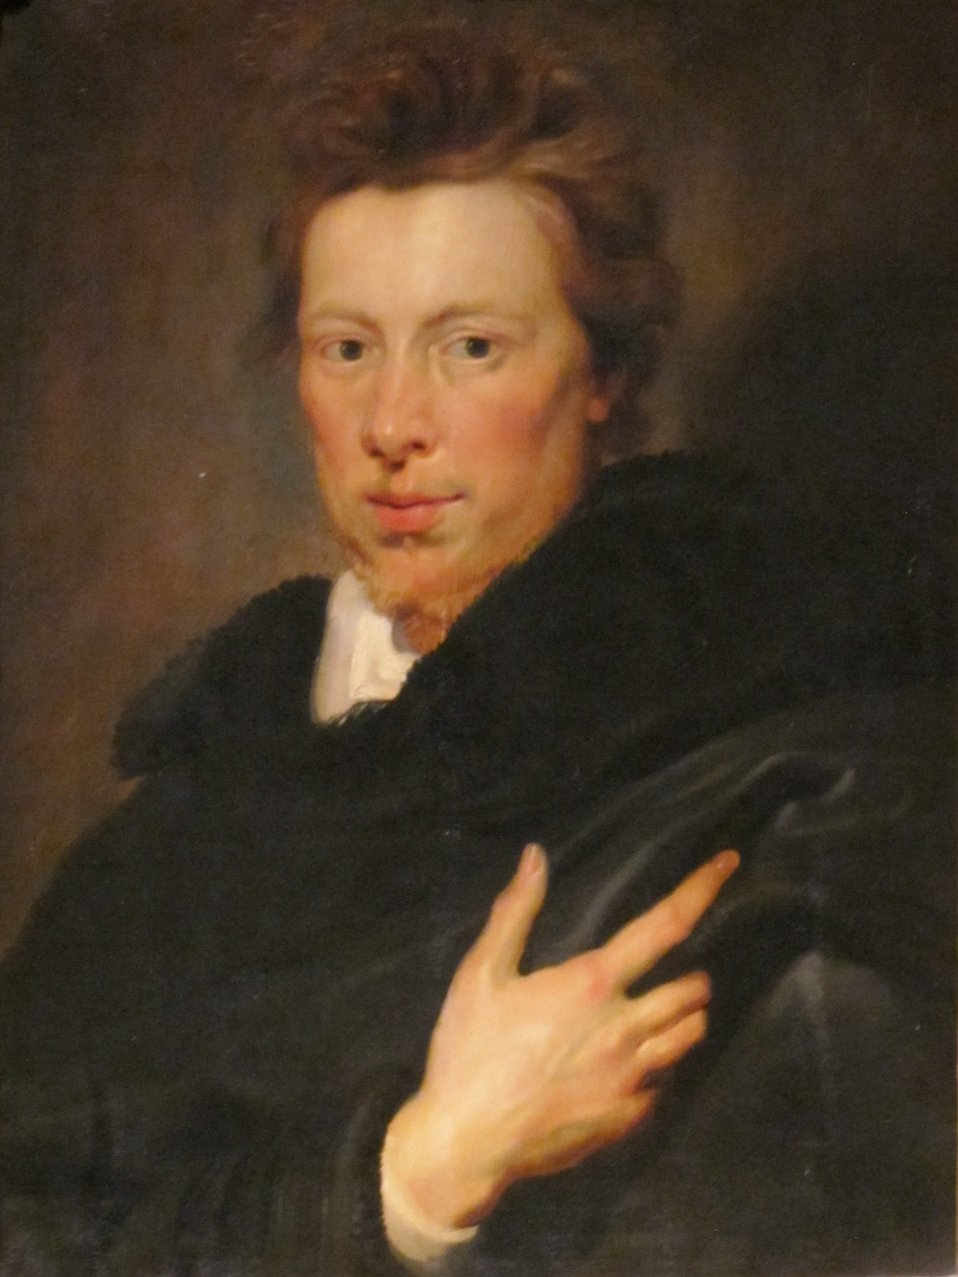 Portrait of Daniel Nijs, oil on oak panel painting by Peter Paul Rubens, c. 1612-15, Dayton Art Institute